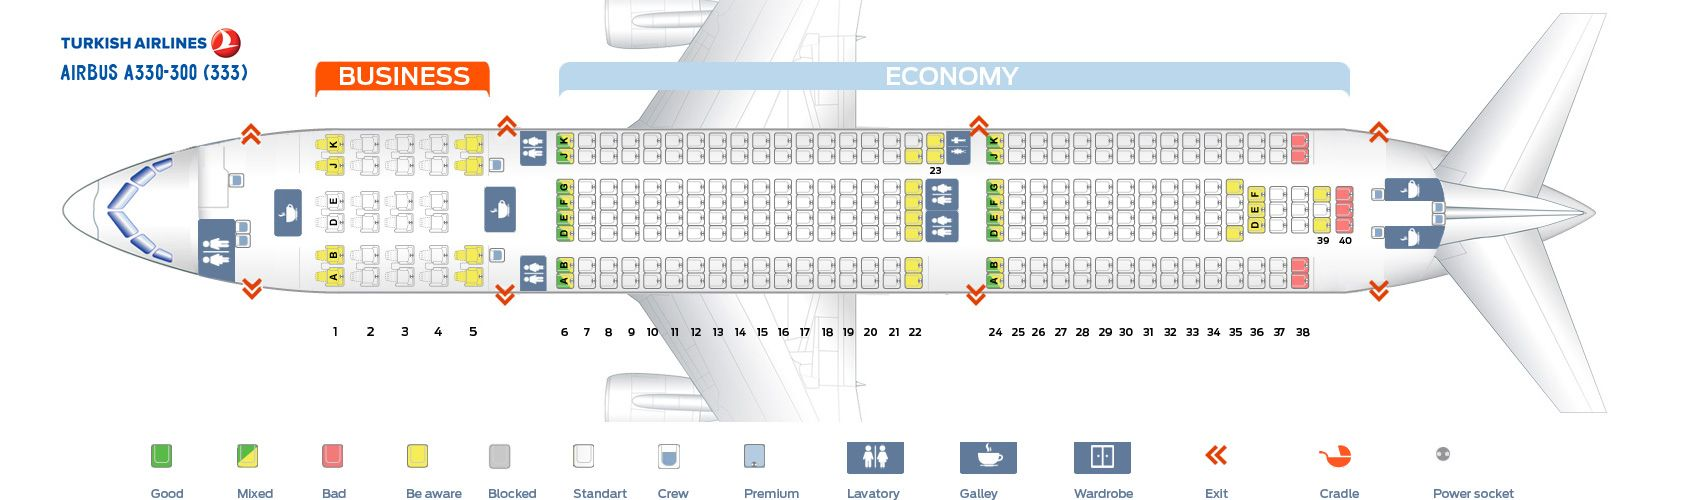 Seat Map And Seating Chart Airbus A330 300 Turkish Airlines Airbus Seating Plan Seating Charts